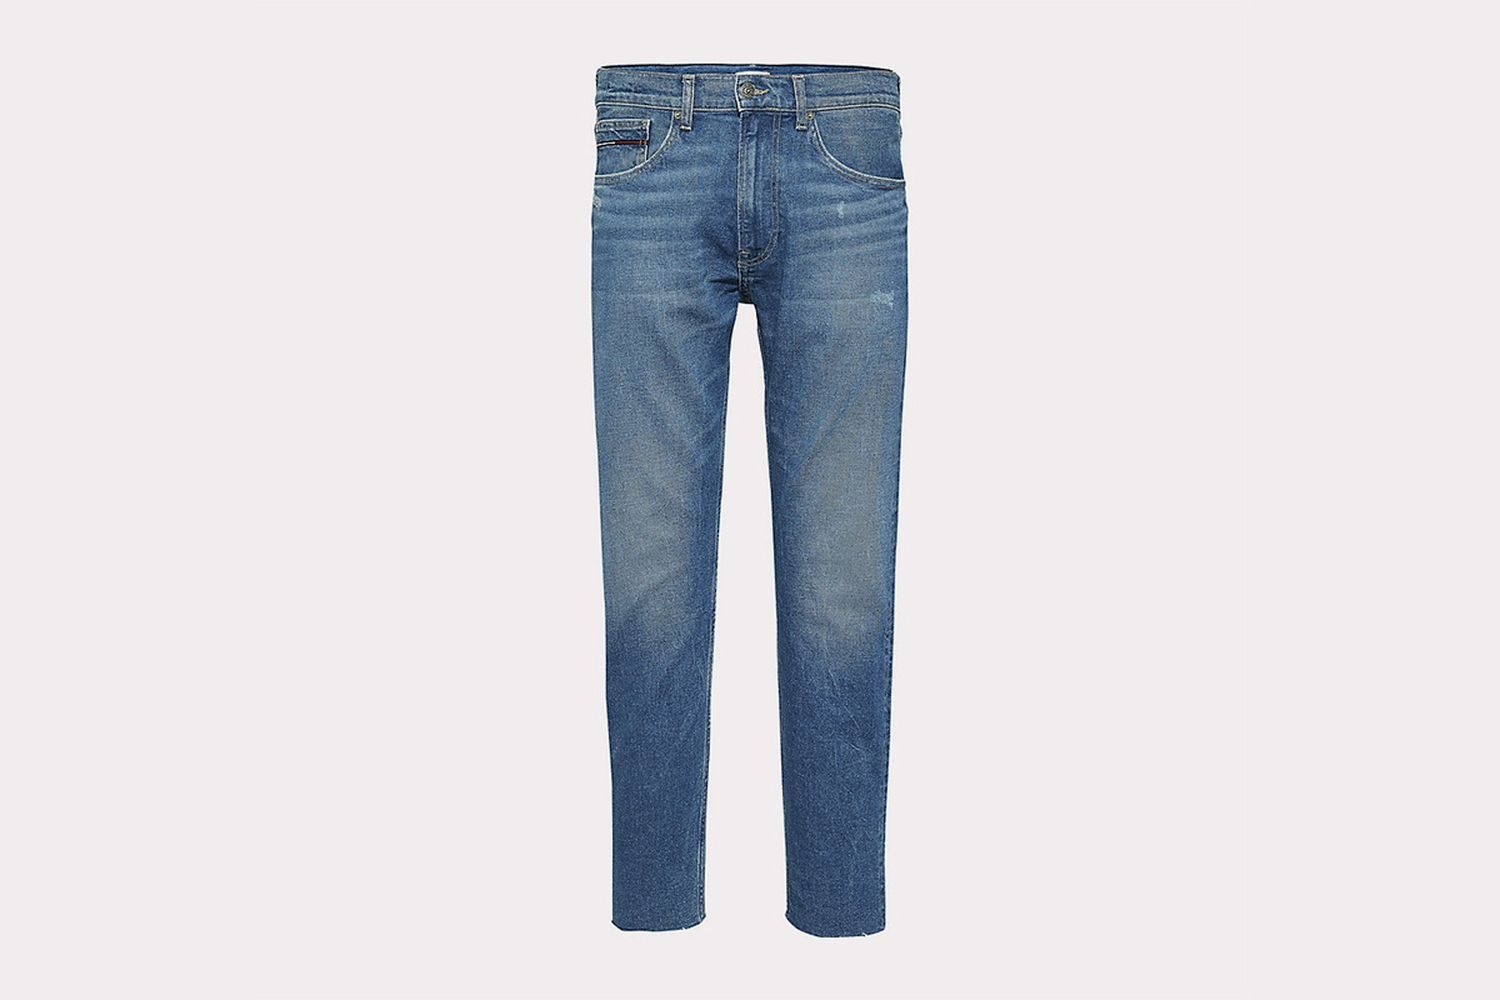 TJ 1988 Tapered Fit Jeans